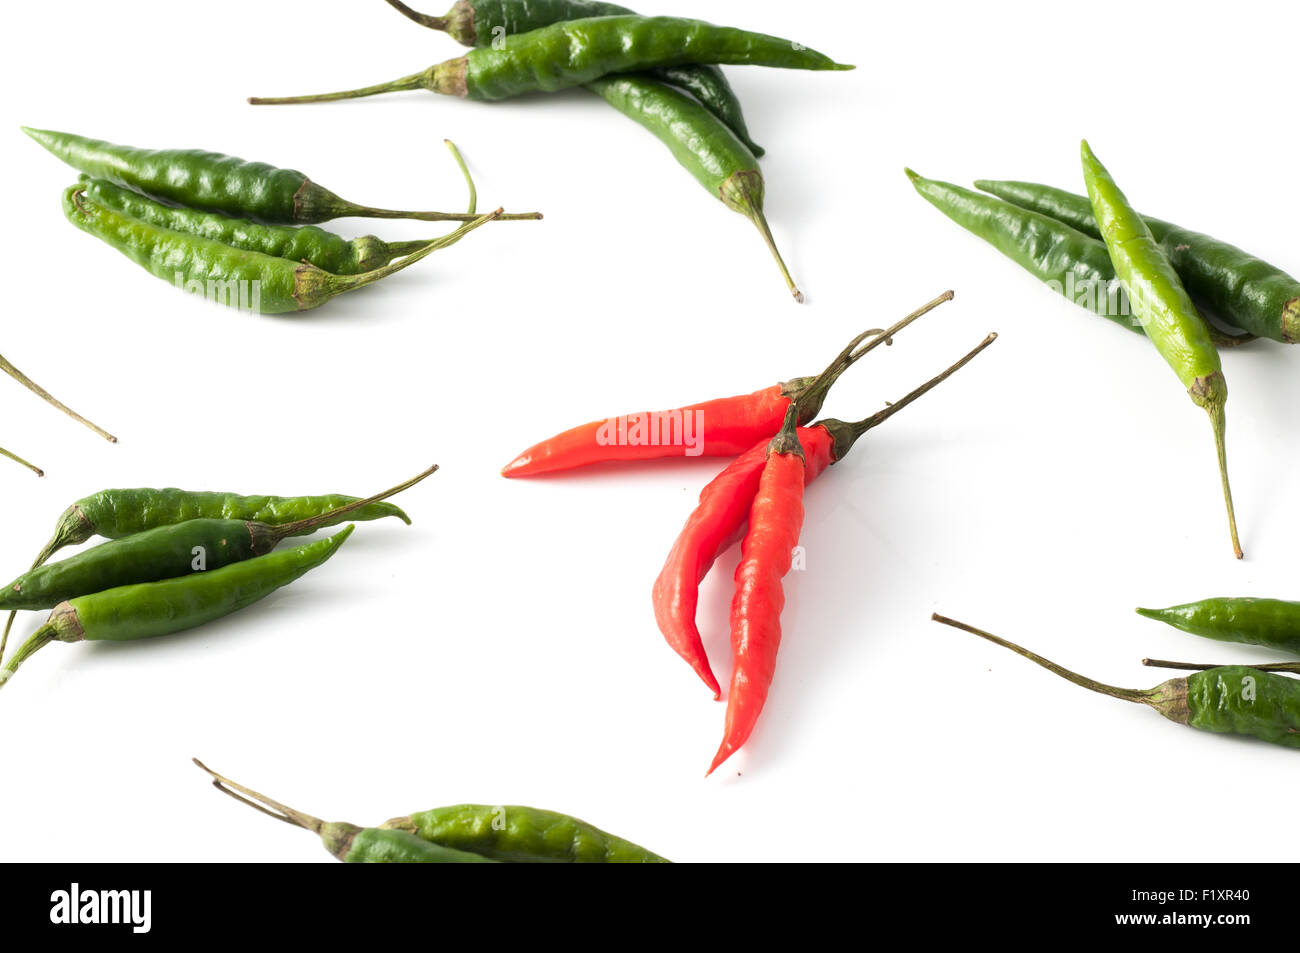 Red and green hot chili peppers - Stock Image